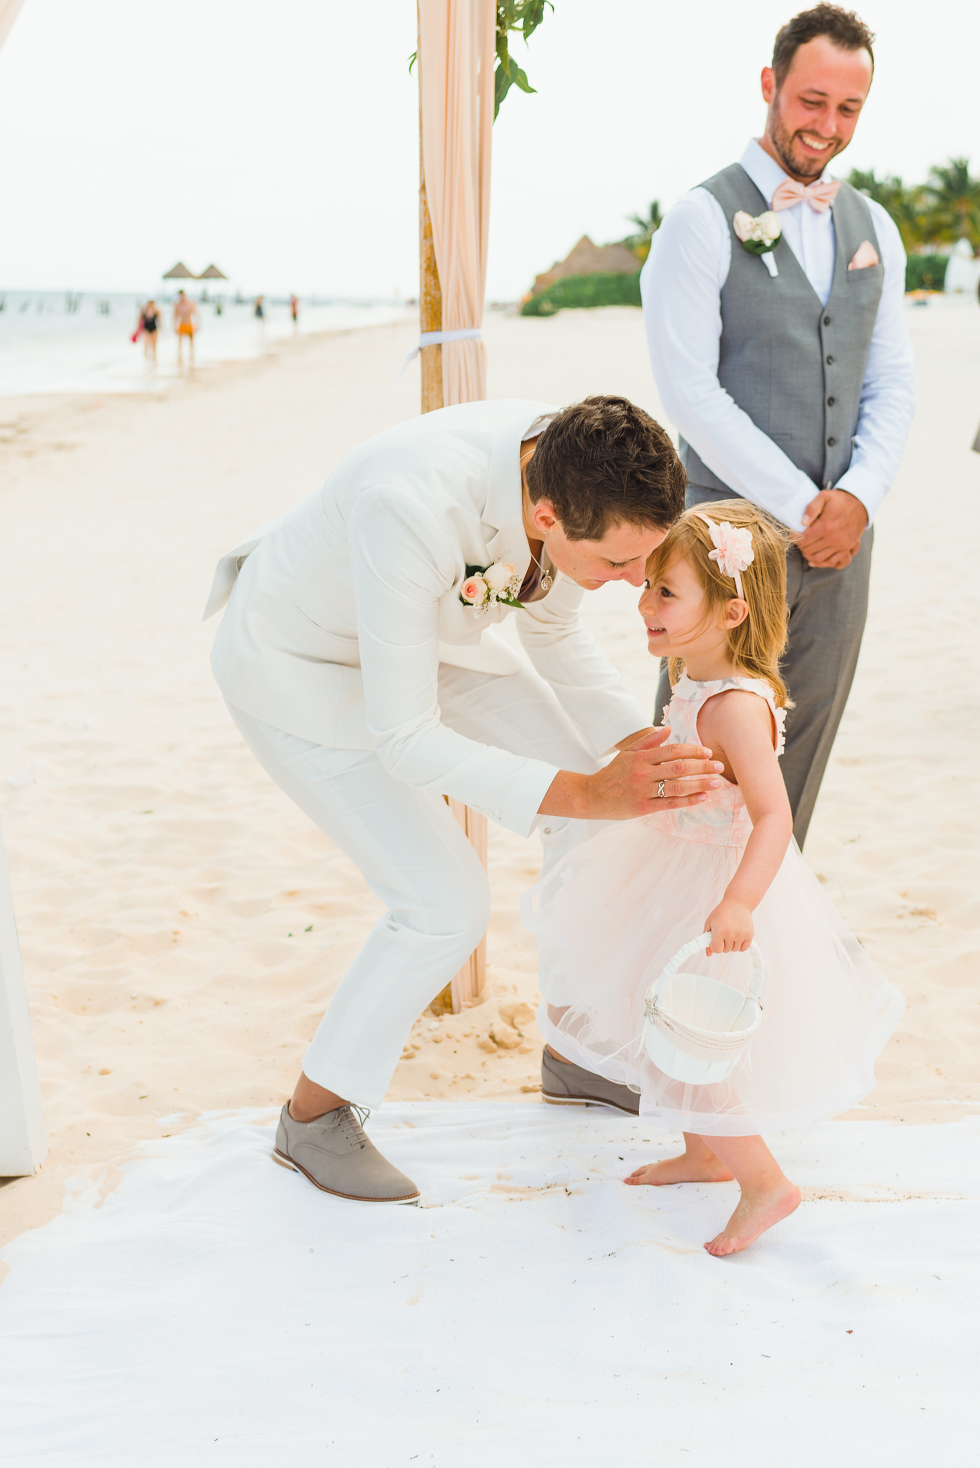 bride crouching down to greet a young girl at the wedding alter as a groomsman watches with a smile during beach ceremony at Now Sapphire Resort in Mexico